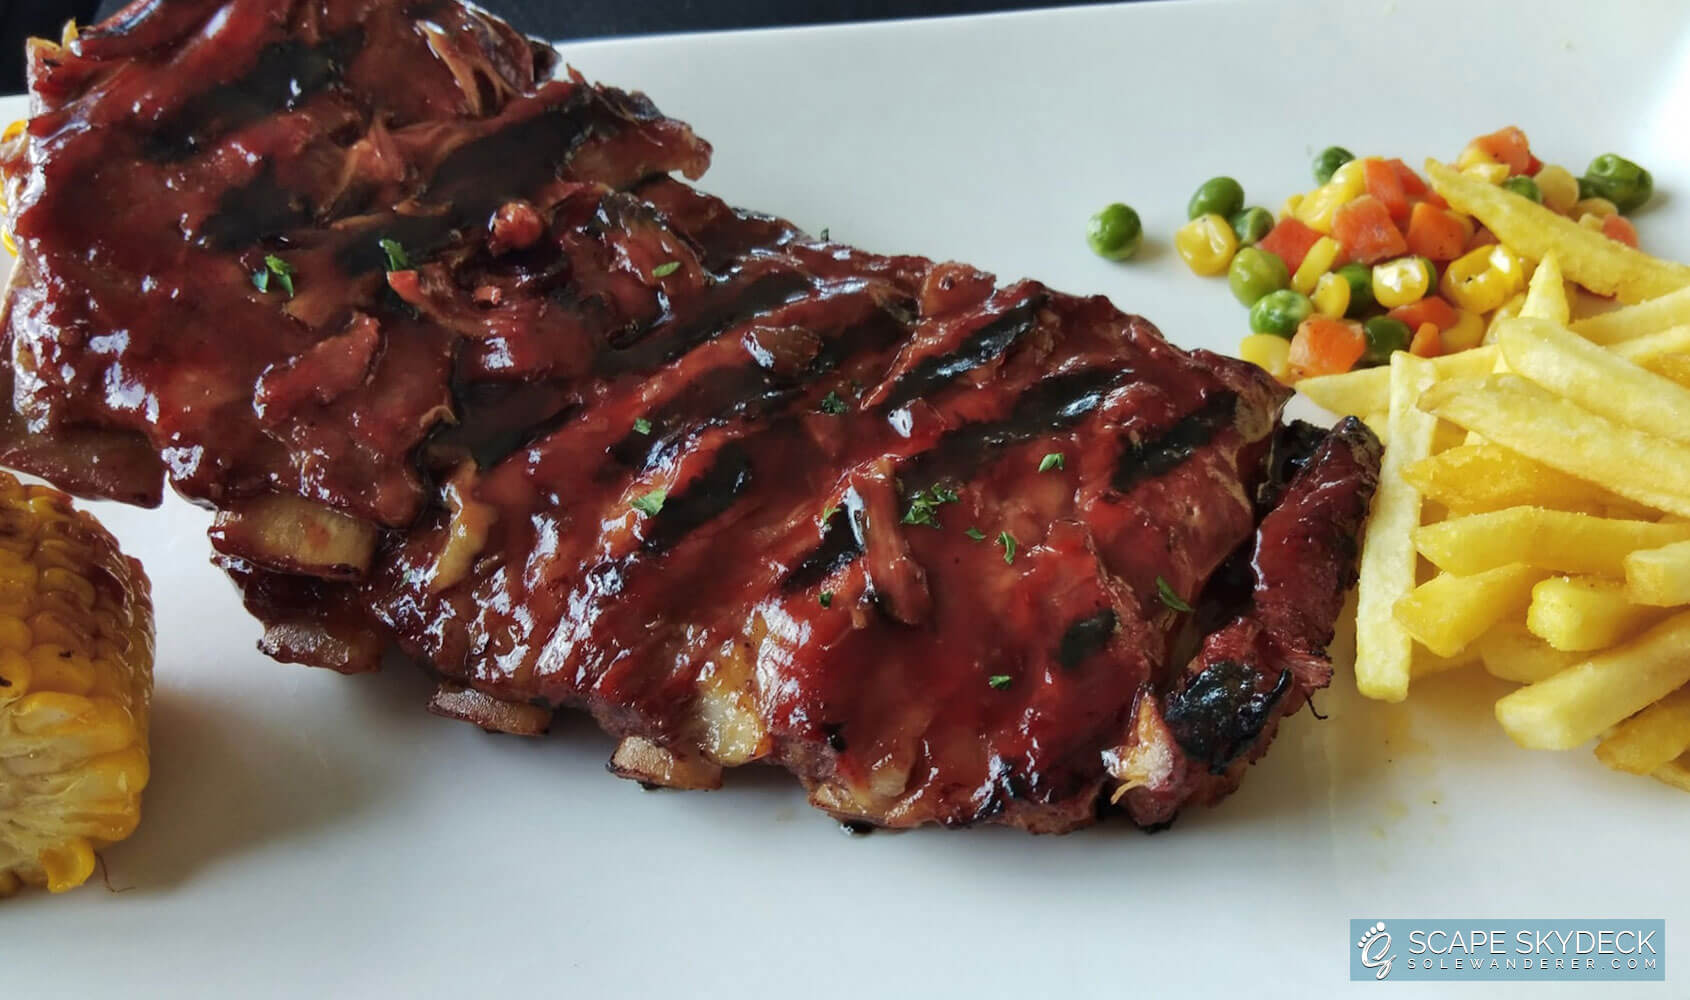 Scape Skydeck Smoked Baby Back Ribs